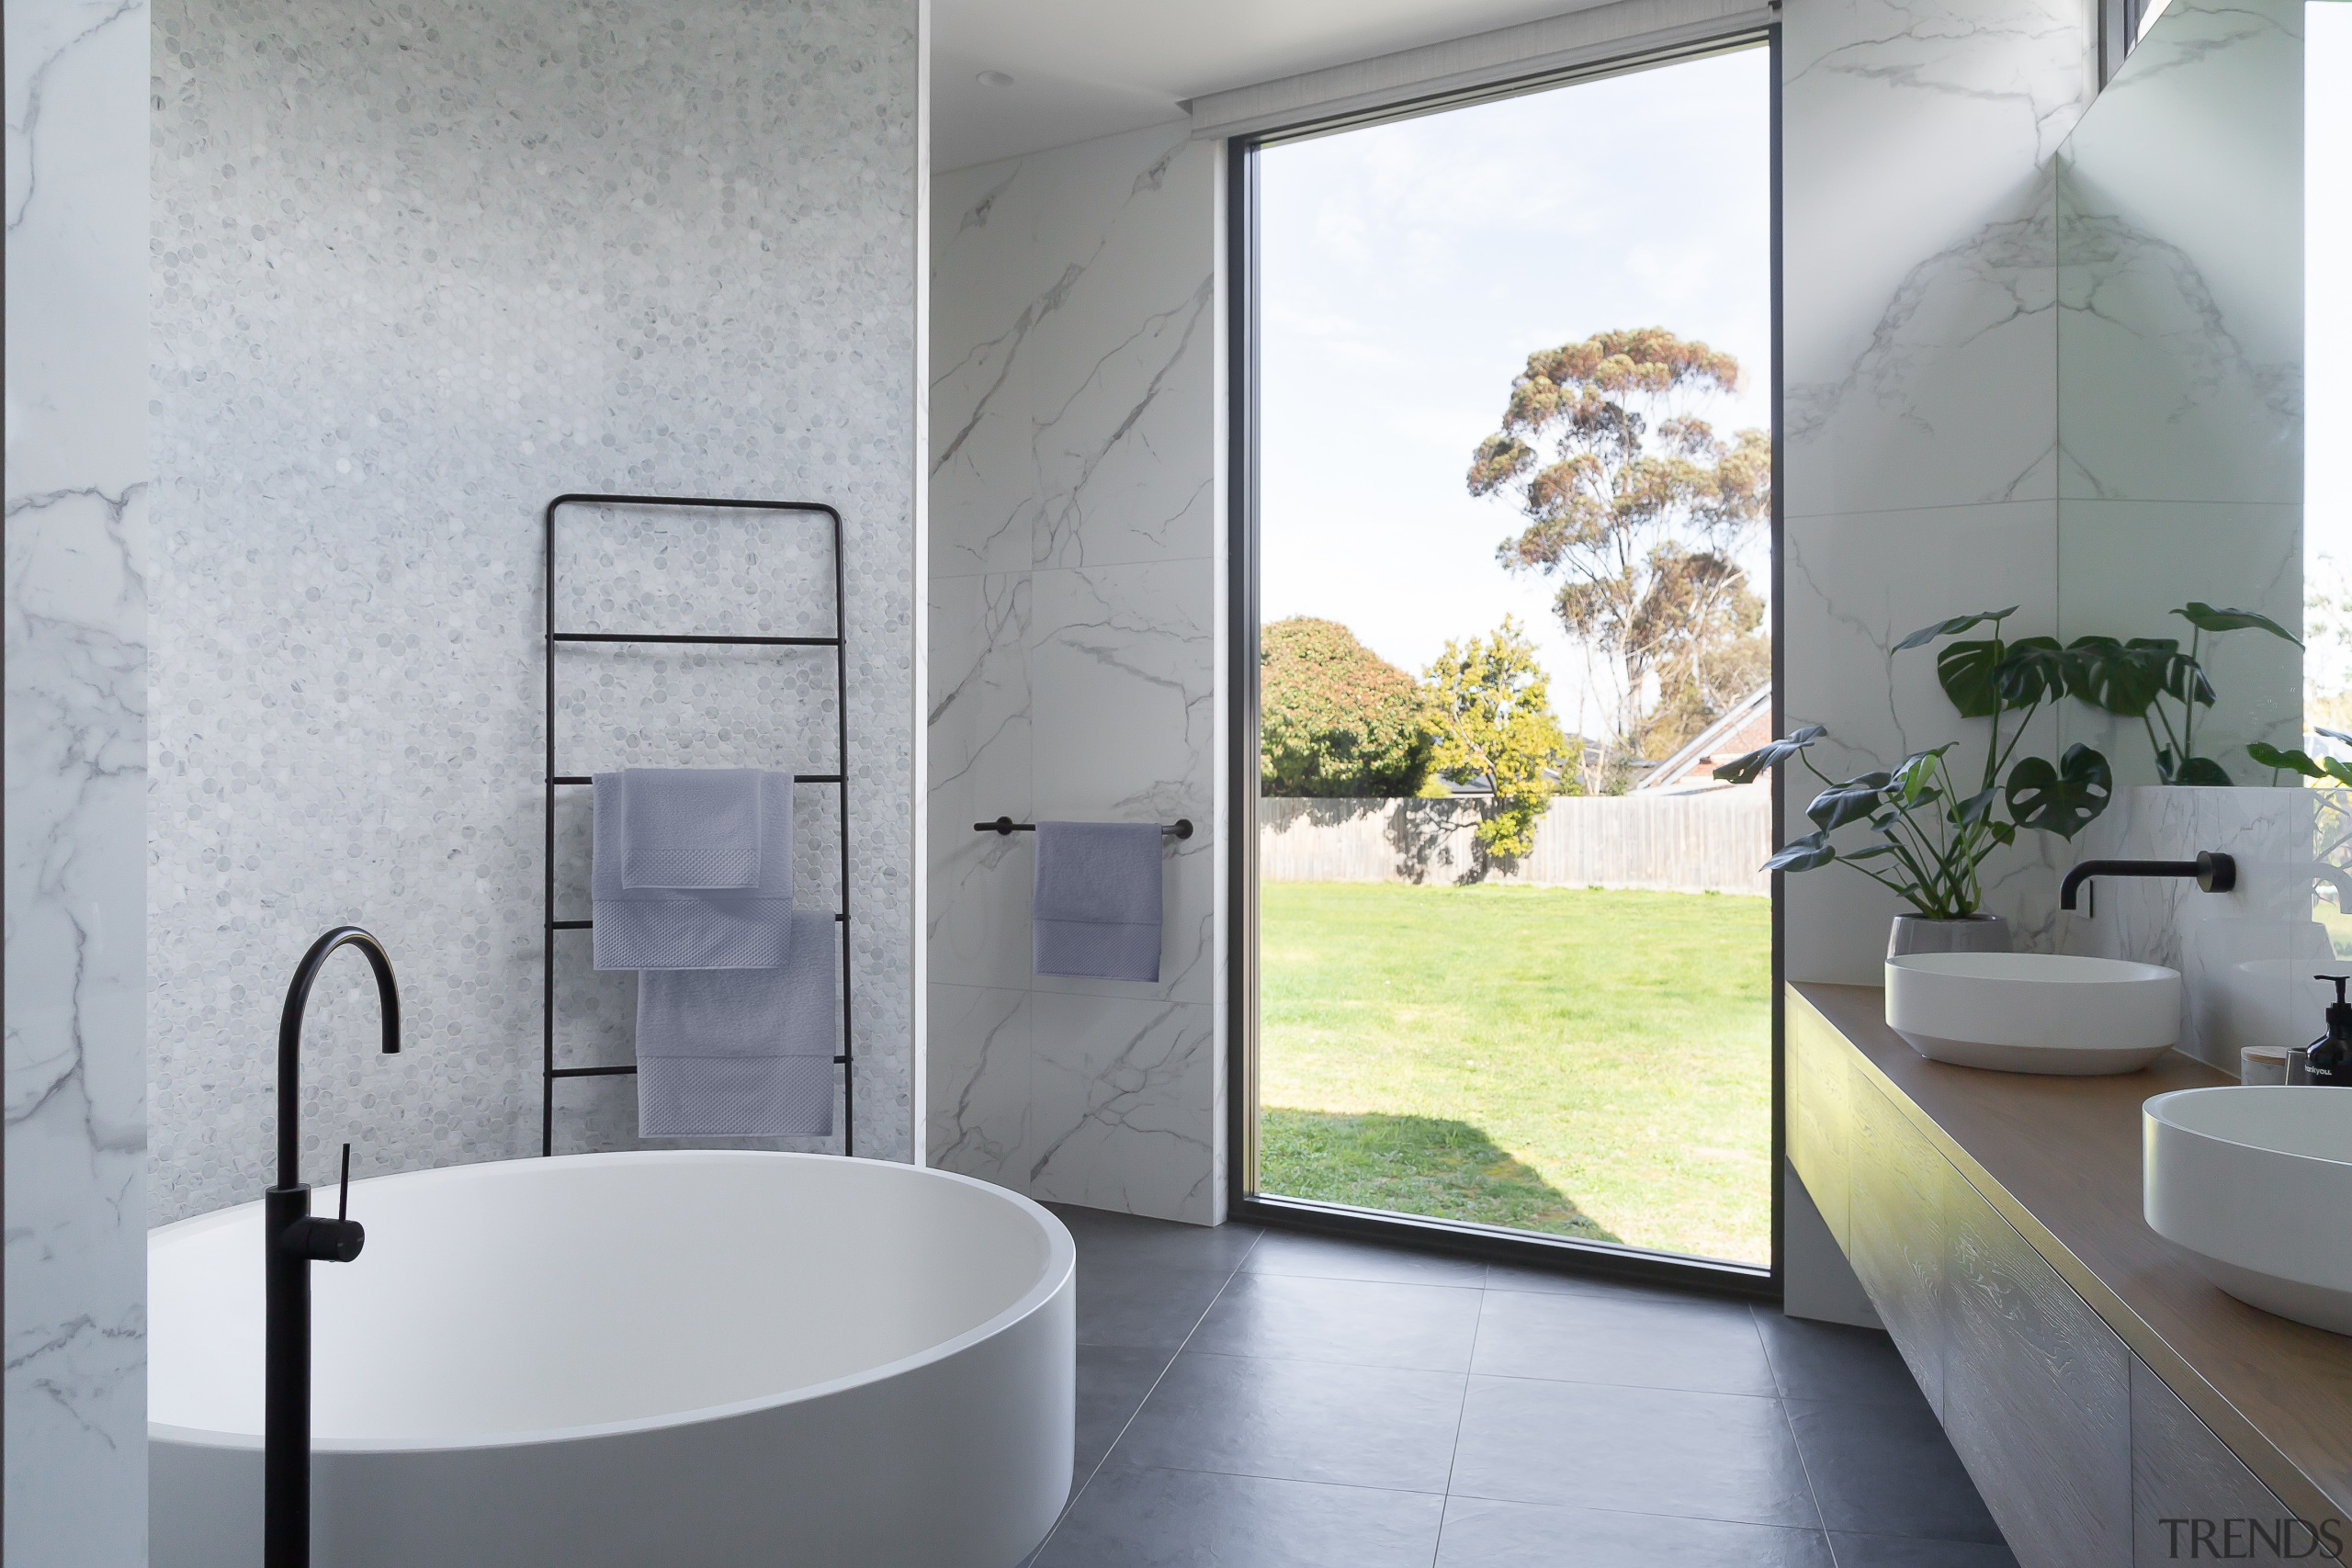 A fixed window brings light and views into gray